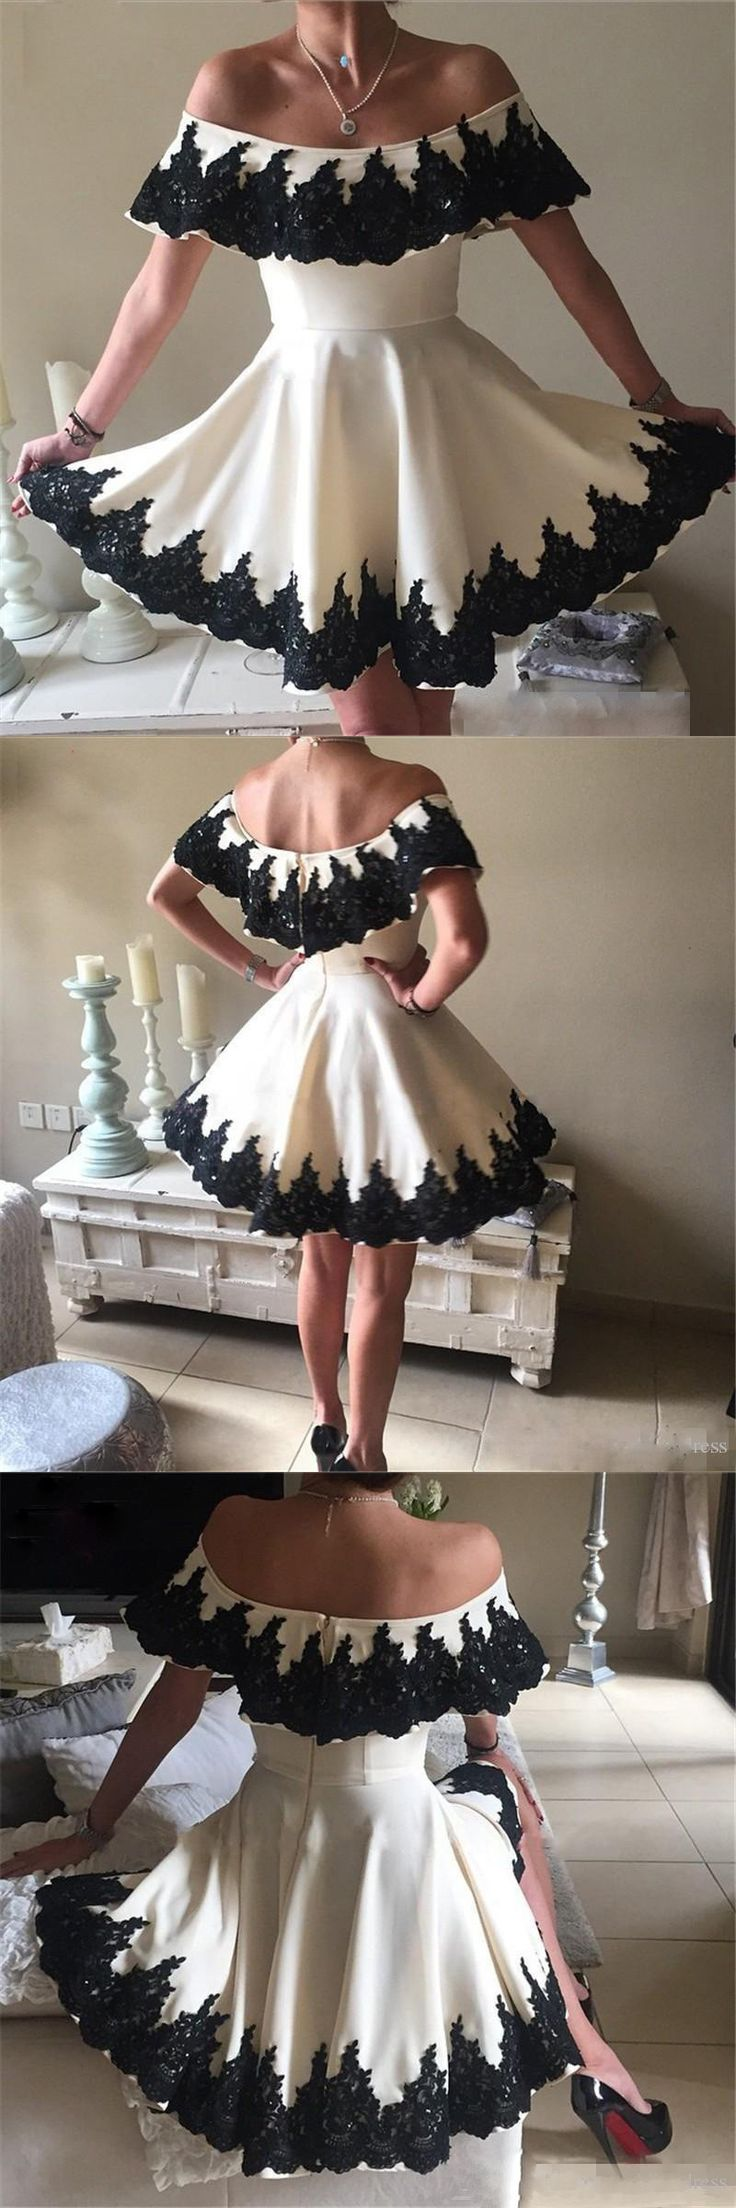 homecoming dresses,short homecoming dresses,cheap homecoming dresses,off-the-shoulder homecoming dresses,2017homecoming dresses